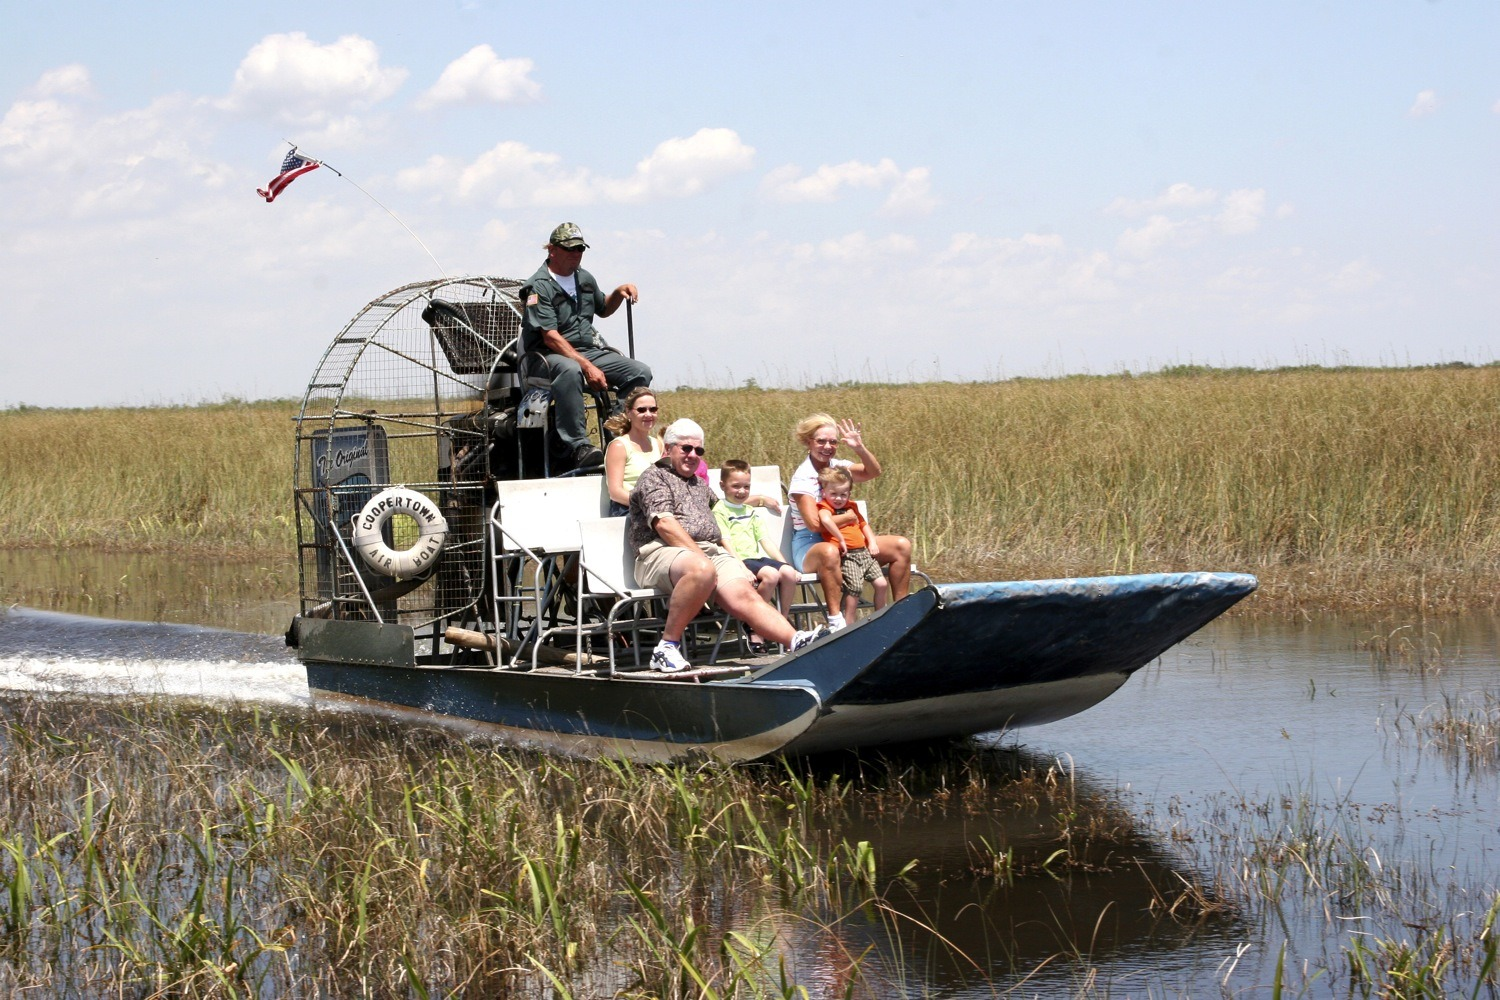 Coopertown Airboat Rides, Wildlife and attractions, The Everglades, Miami